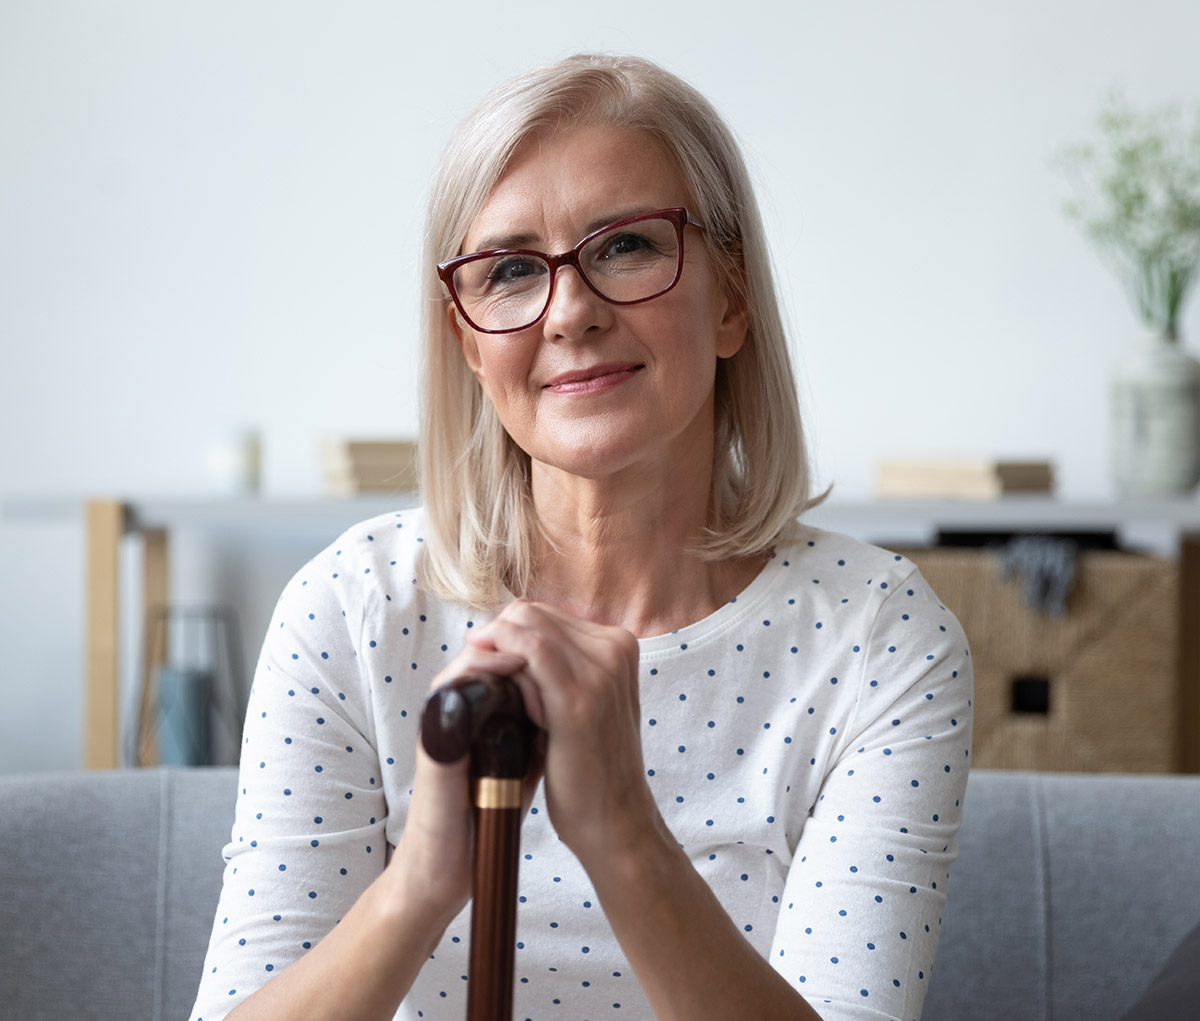 head-shot-portrait-beautiful-older-woman-in-glasses-with-cane-picture-id1180231087